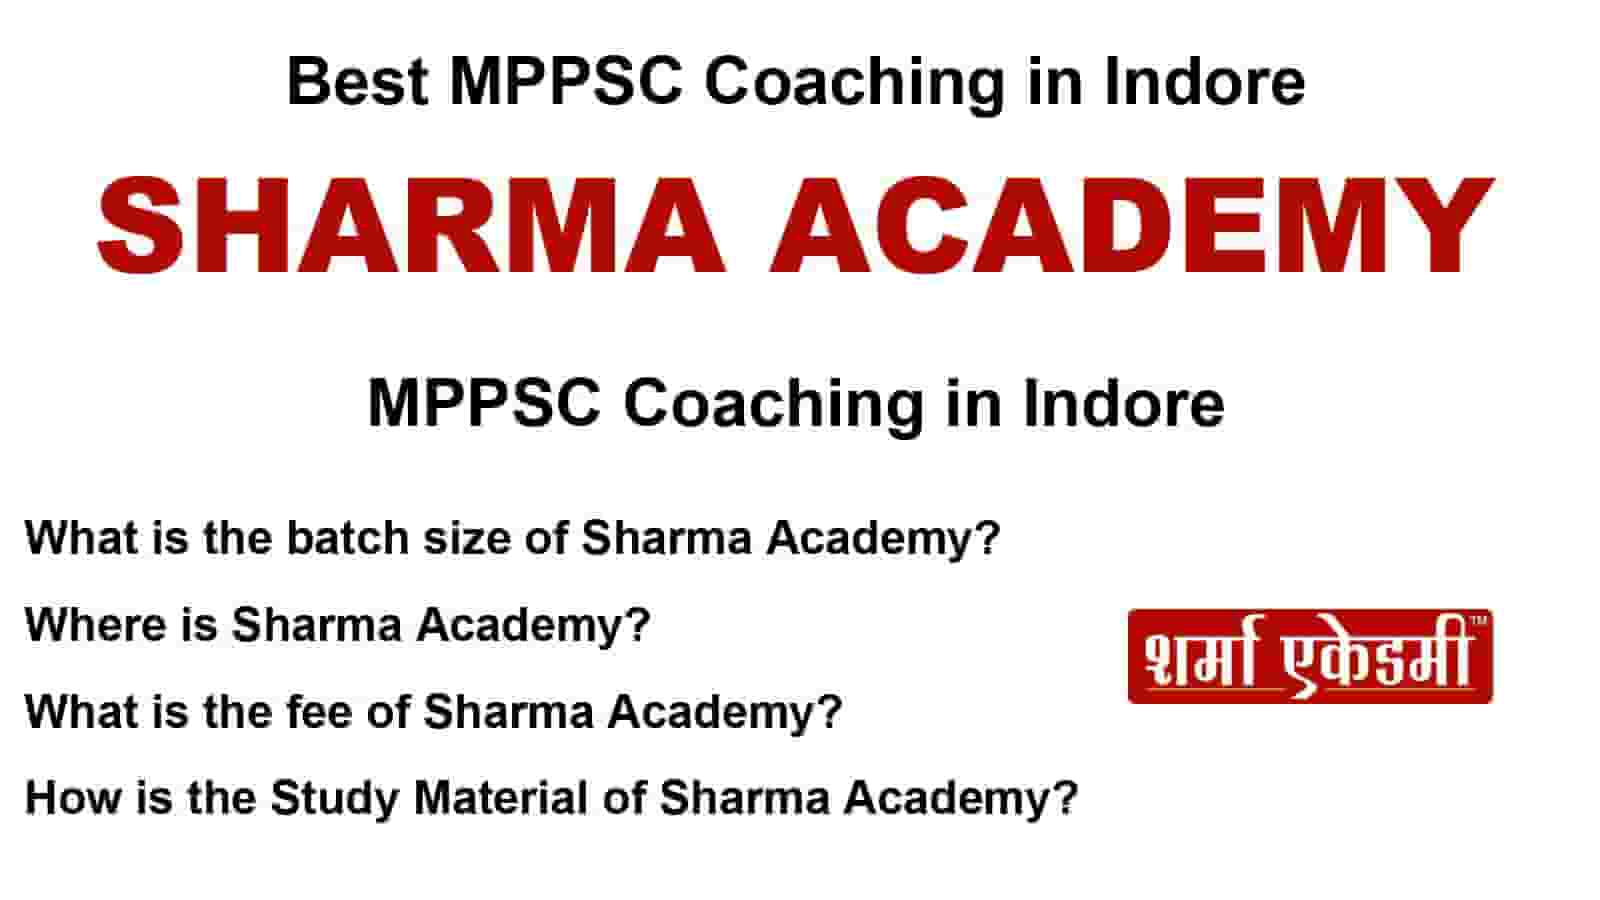 Mppsc Coaching in Indore, Best MPPSC Coaching in Indore, Top MPPSC Coaching in Indore, Sharma Academy Mppsc Coaching in Indore, Sharma Academy Best MPPSC Coaching in Indore, Sharma Academy Top MPPSC Coaching in Indore, Mppsc Coaching Classes in Indore, Best MPPSC Coaching Classes in Indore, Top MPPSC Coaching Classes in Indore, Sharma Academy Mppsc Coaching Classes in Indore, Sharma Academy Best MPPSC Coaching Classes in Indore, Sharma Academy Top MPPSC Coaching Classes in Indore, Mppsc Online Coaching Classes, Mppsc Online Classes, Mppsc Online Coaching, Sharma Academy Mppsc Online Coaching Classes, Sharma Academy Mppsc Online Classes, Sharma Academy Mppsc Online Coaching, Mppsc Coaching Institute in Indore, Best MPPSC Coaching Institute in Indore, Top MPPSC Coaching Institute in Indore, Sharma Academy Mppsc Coaching Institute in Indore, Sharma Academy Best MPPSC Coaching Institute in Indore, Sharma Academy Top MPPSC Coaching Institute in Indore